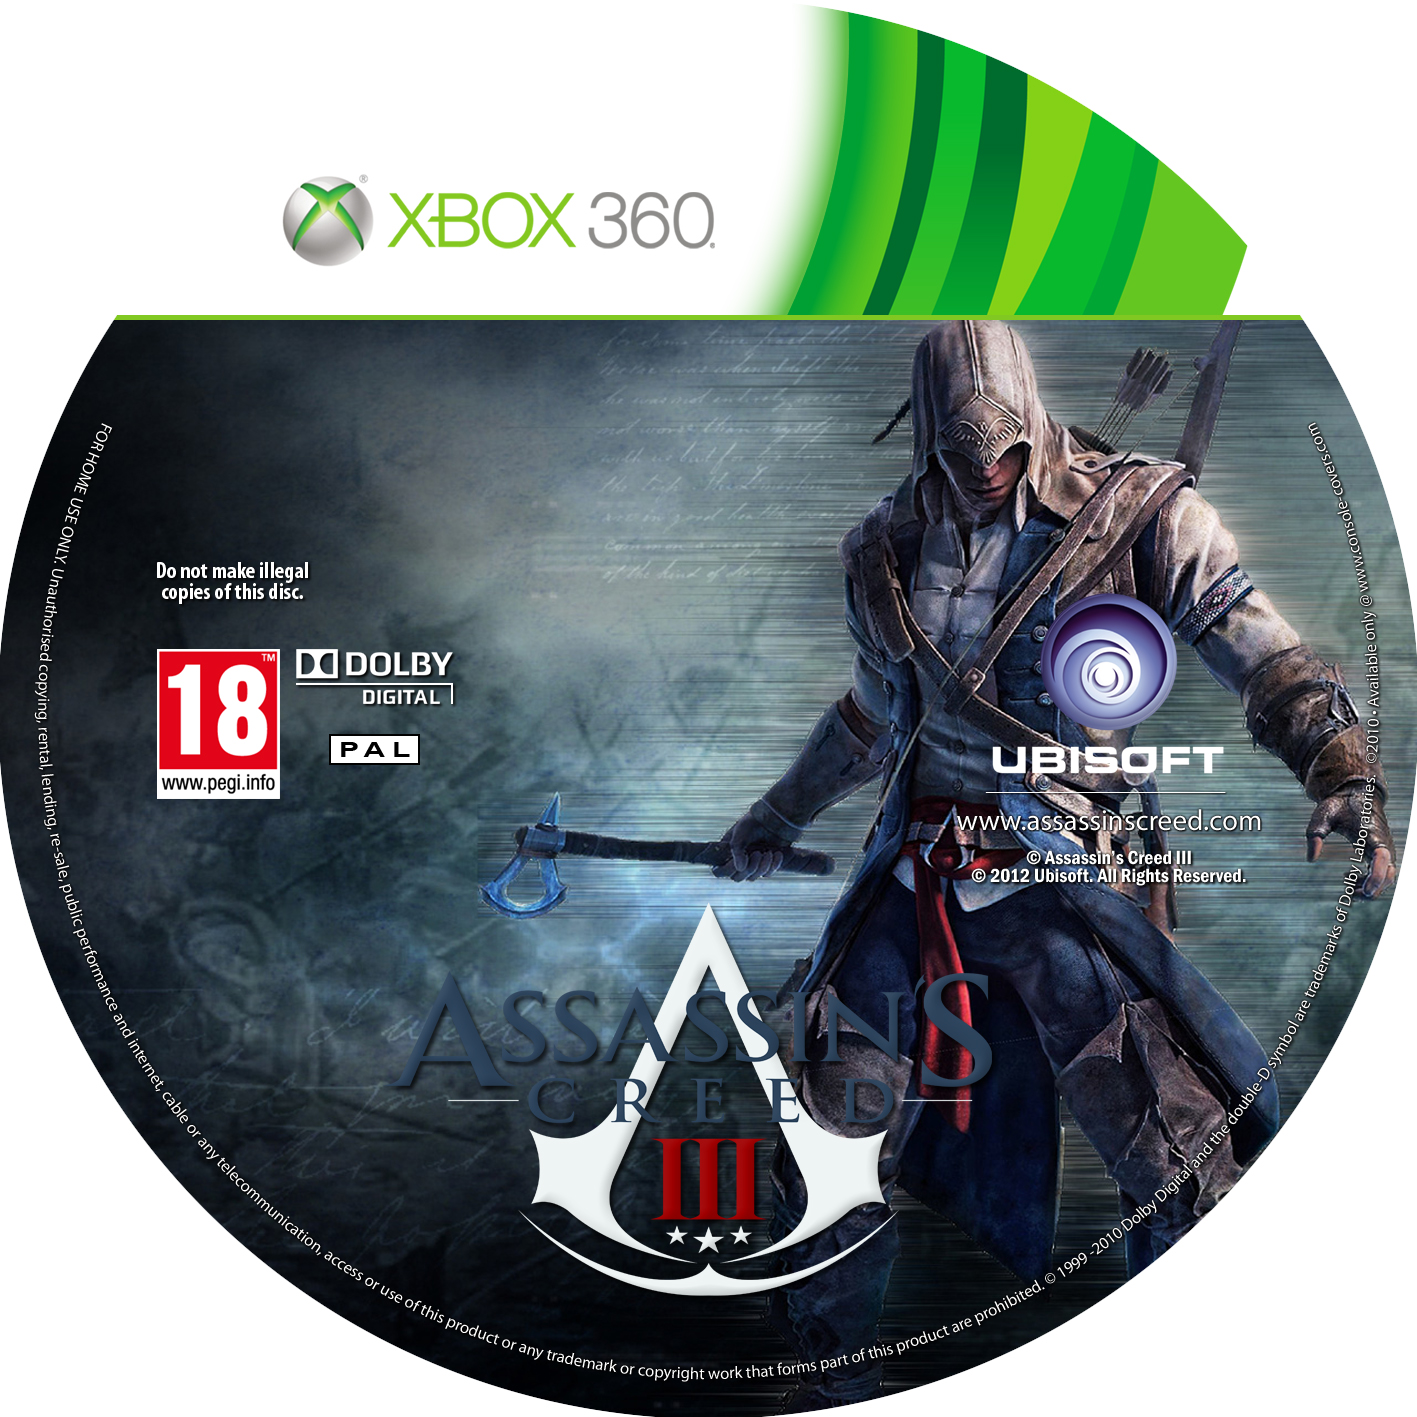 Label Assassins Creed III Xbox 360